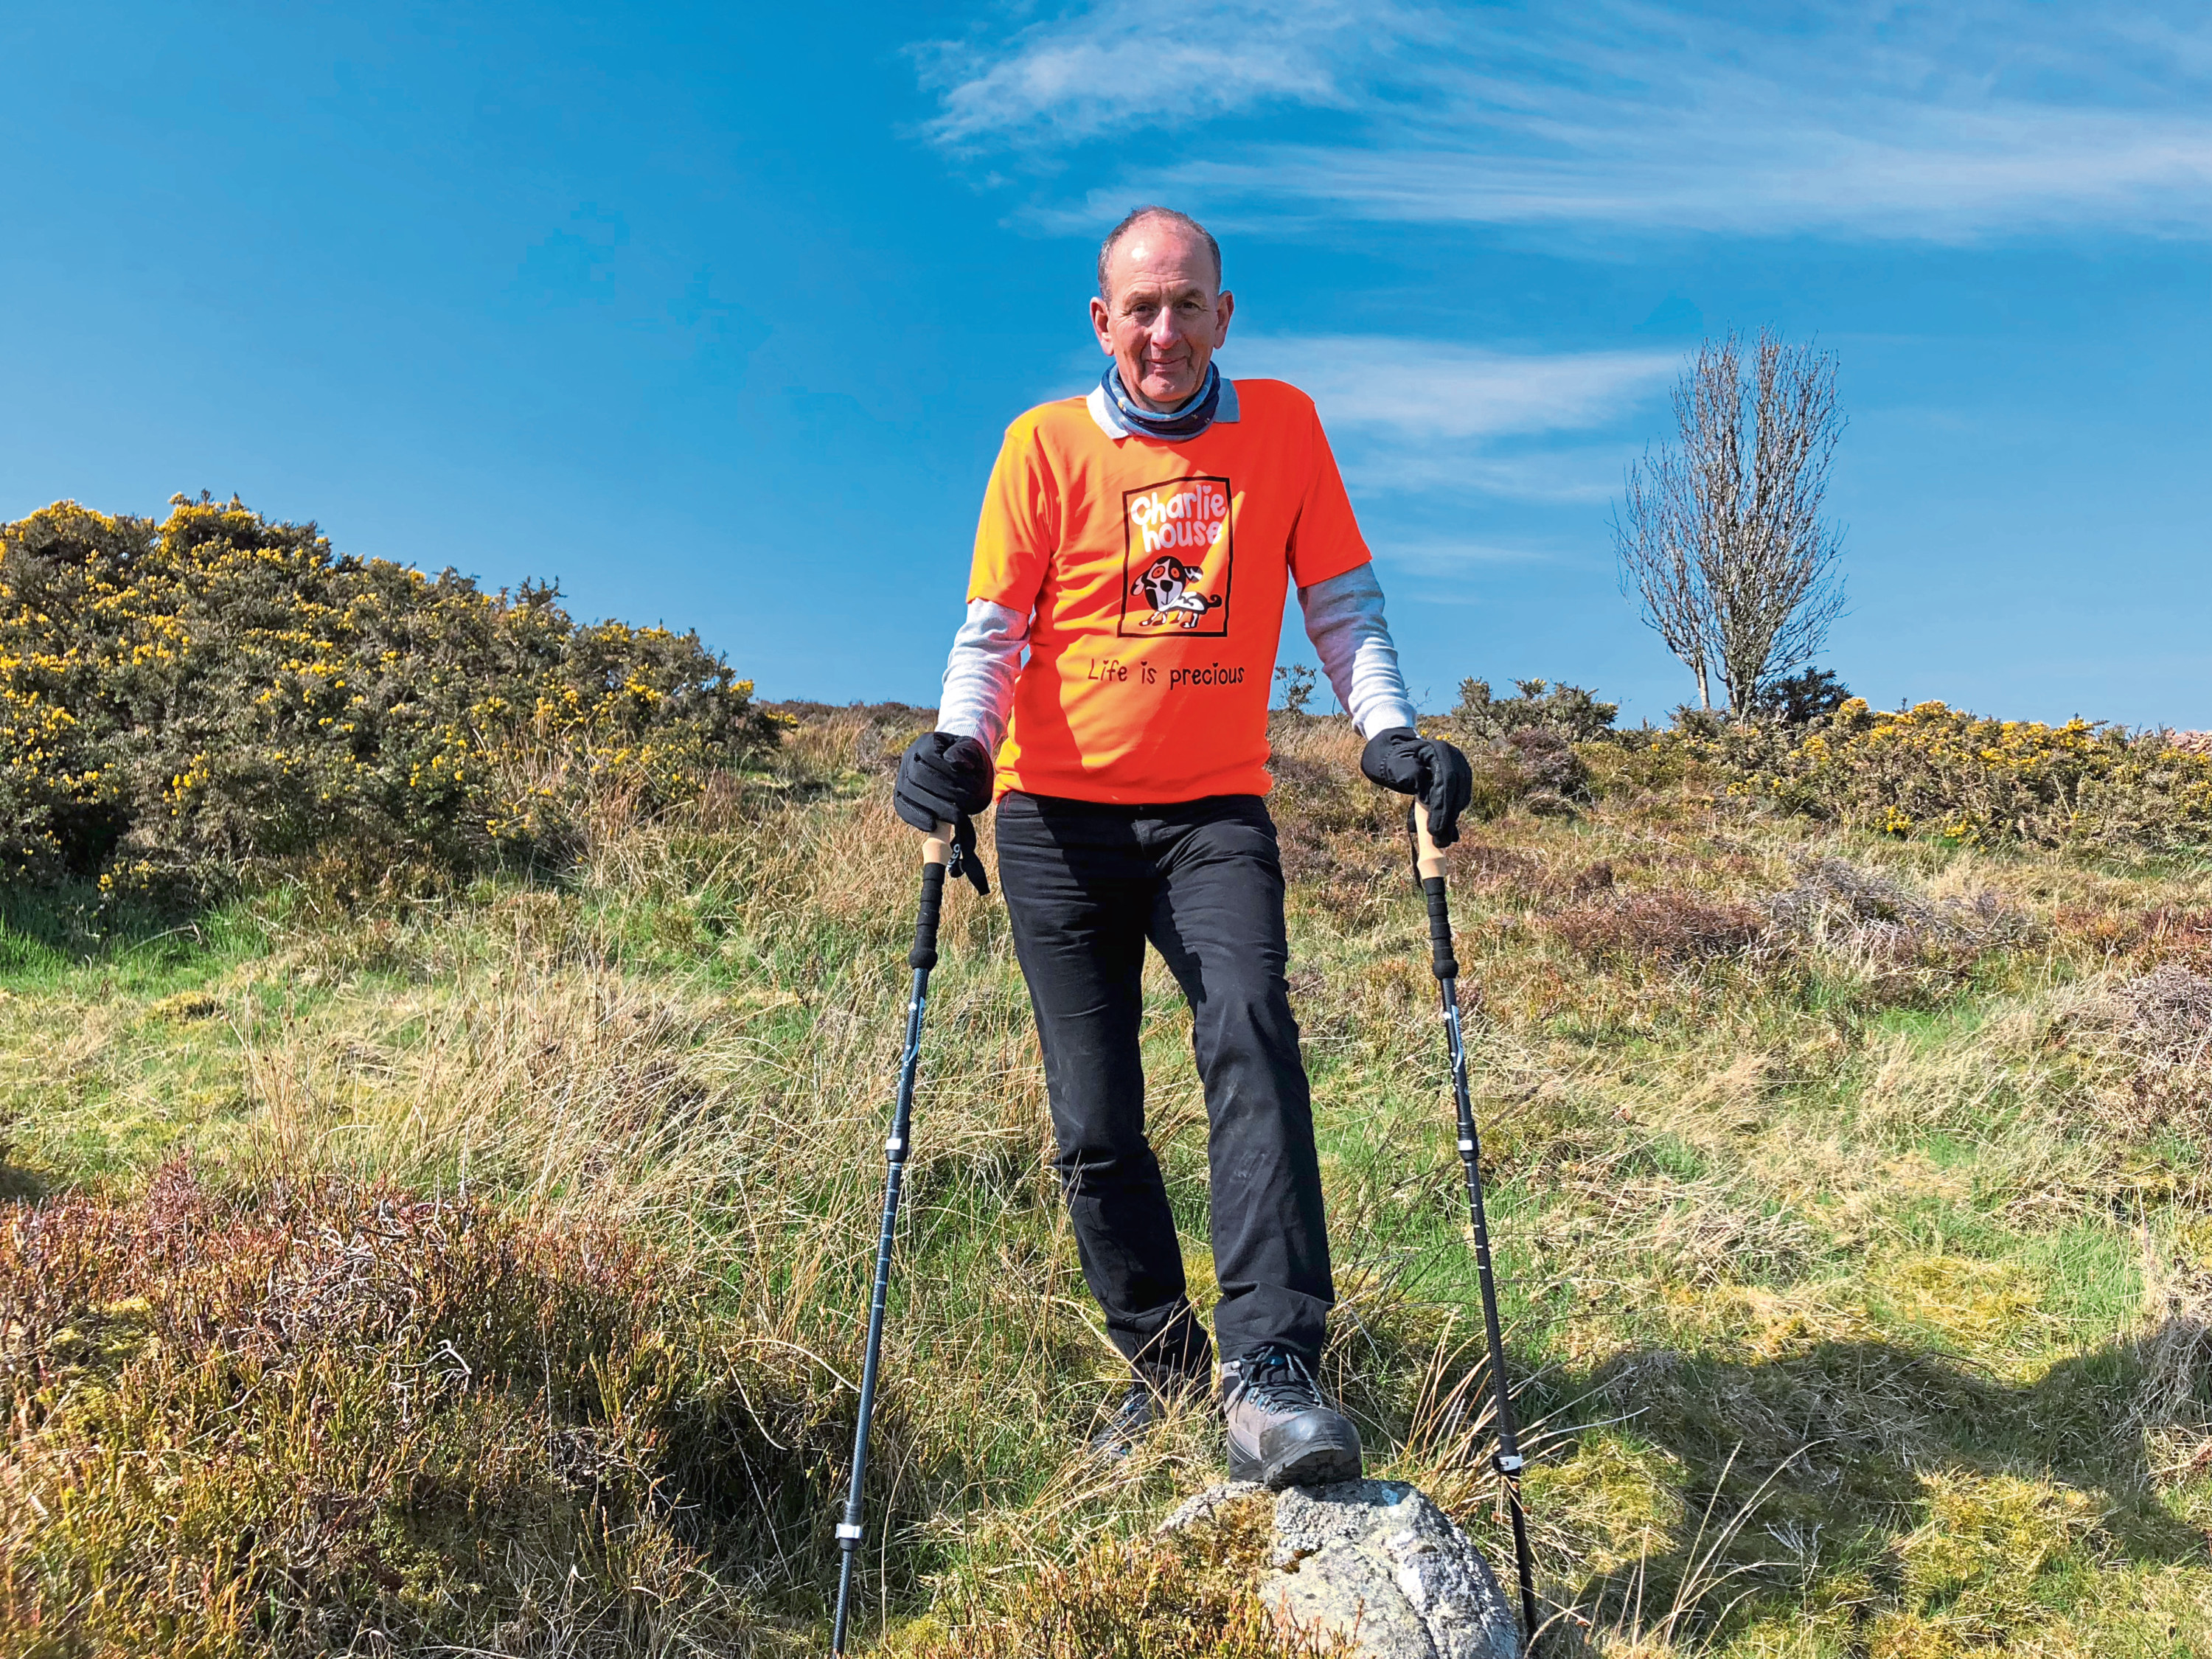 Willie Donald, of W M Donald, took on the West Highland Way challenge